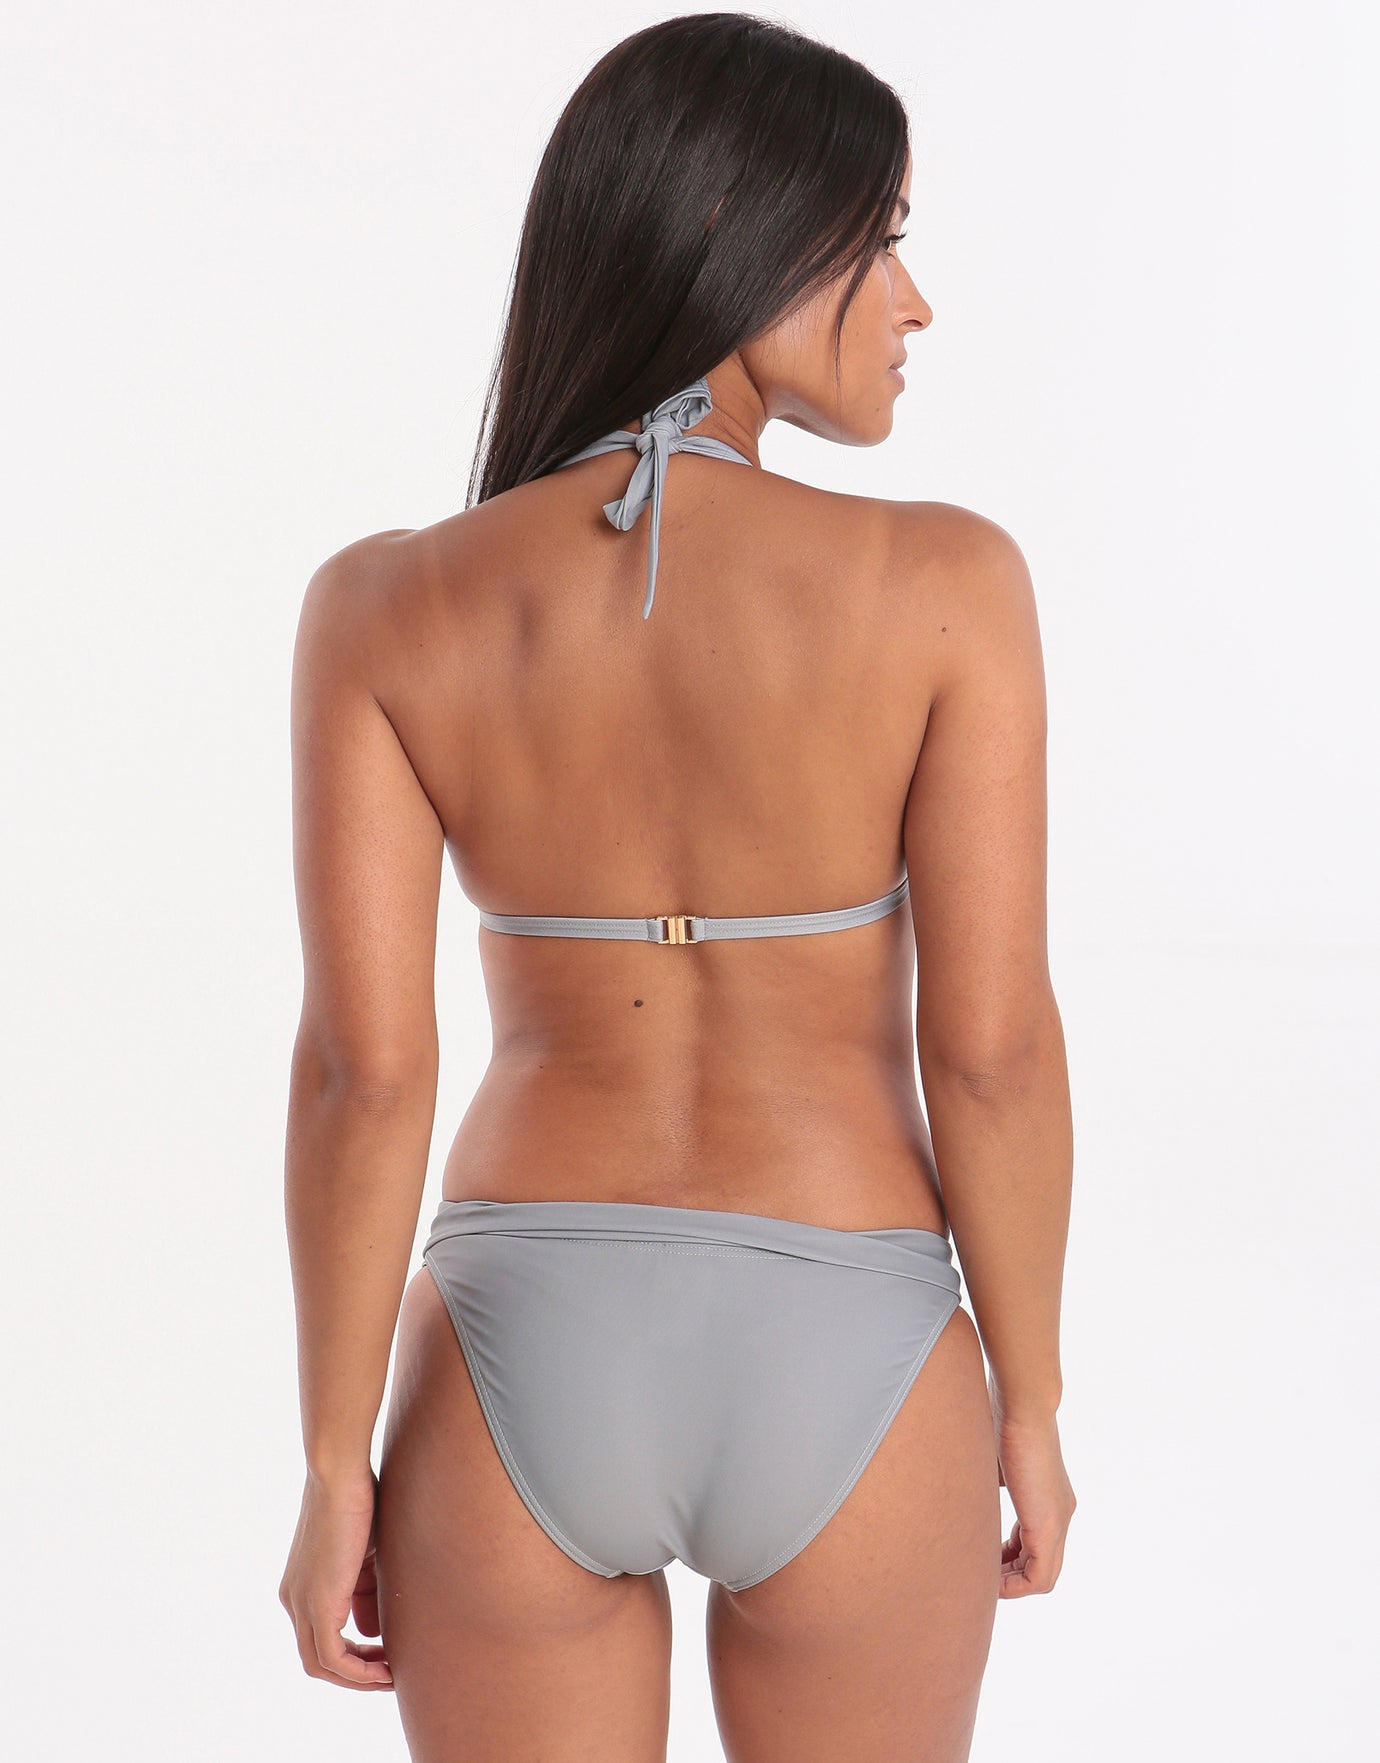 West Seventy Nine Triangle Bikini Top - Shadow